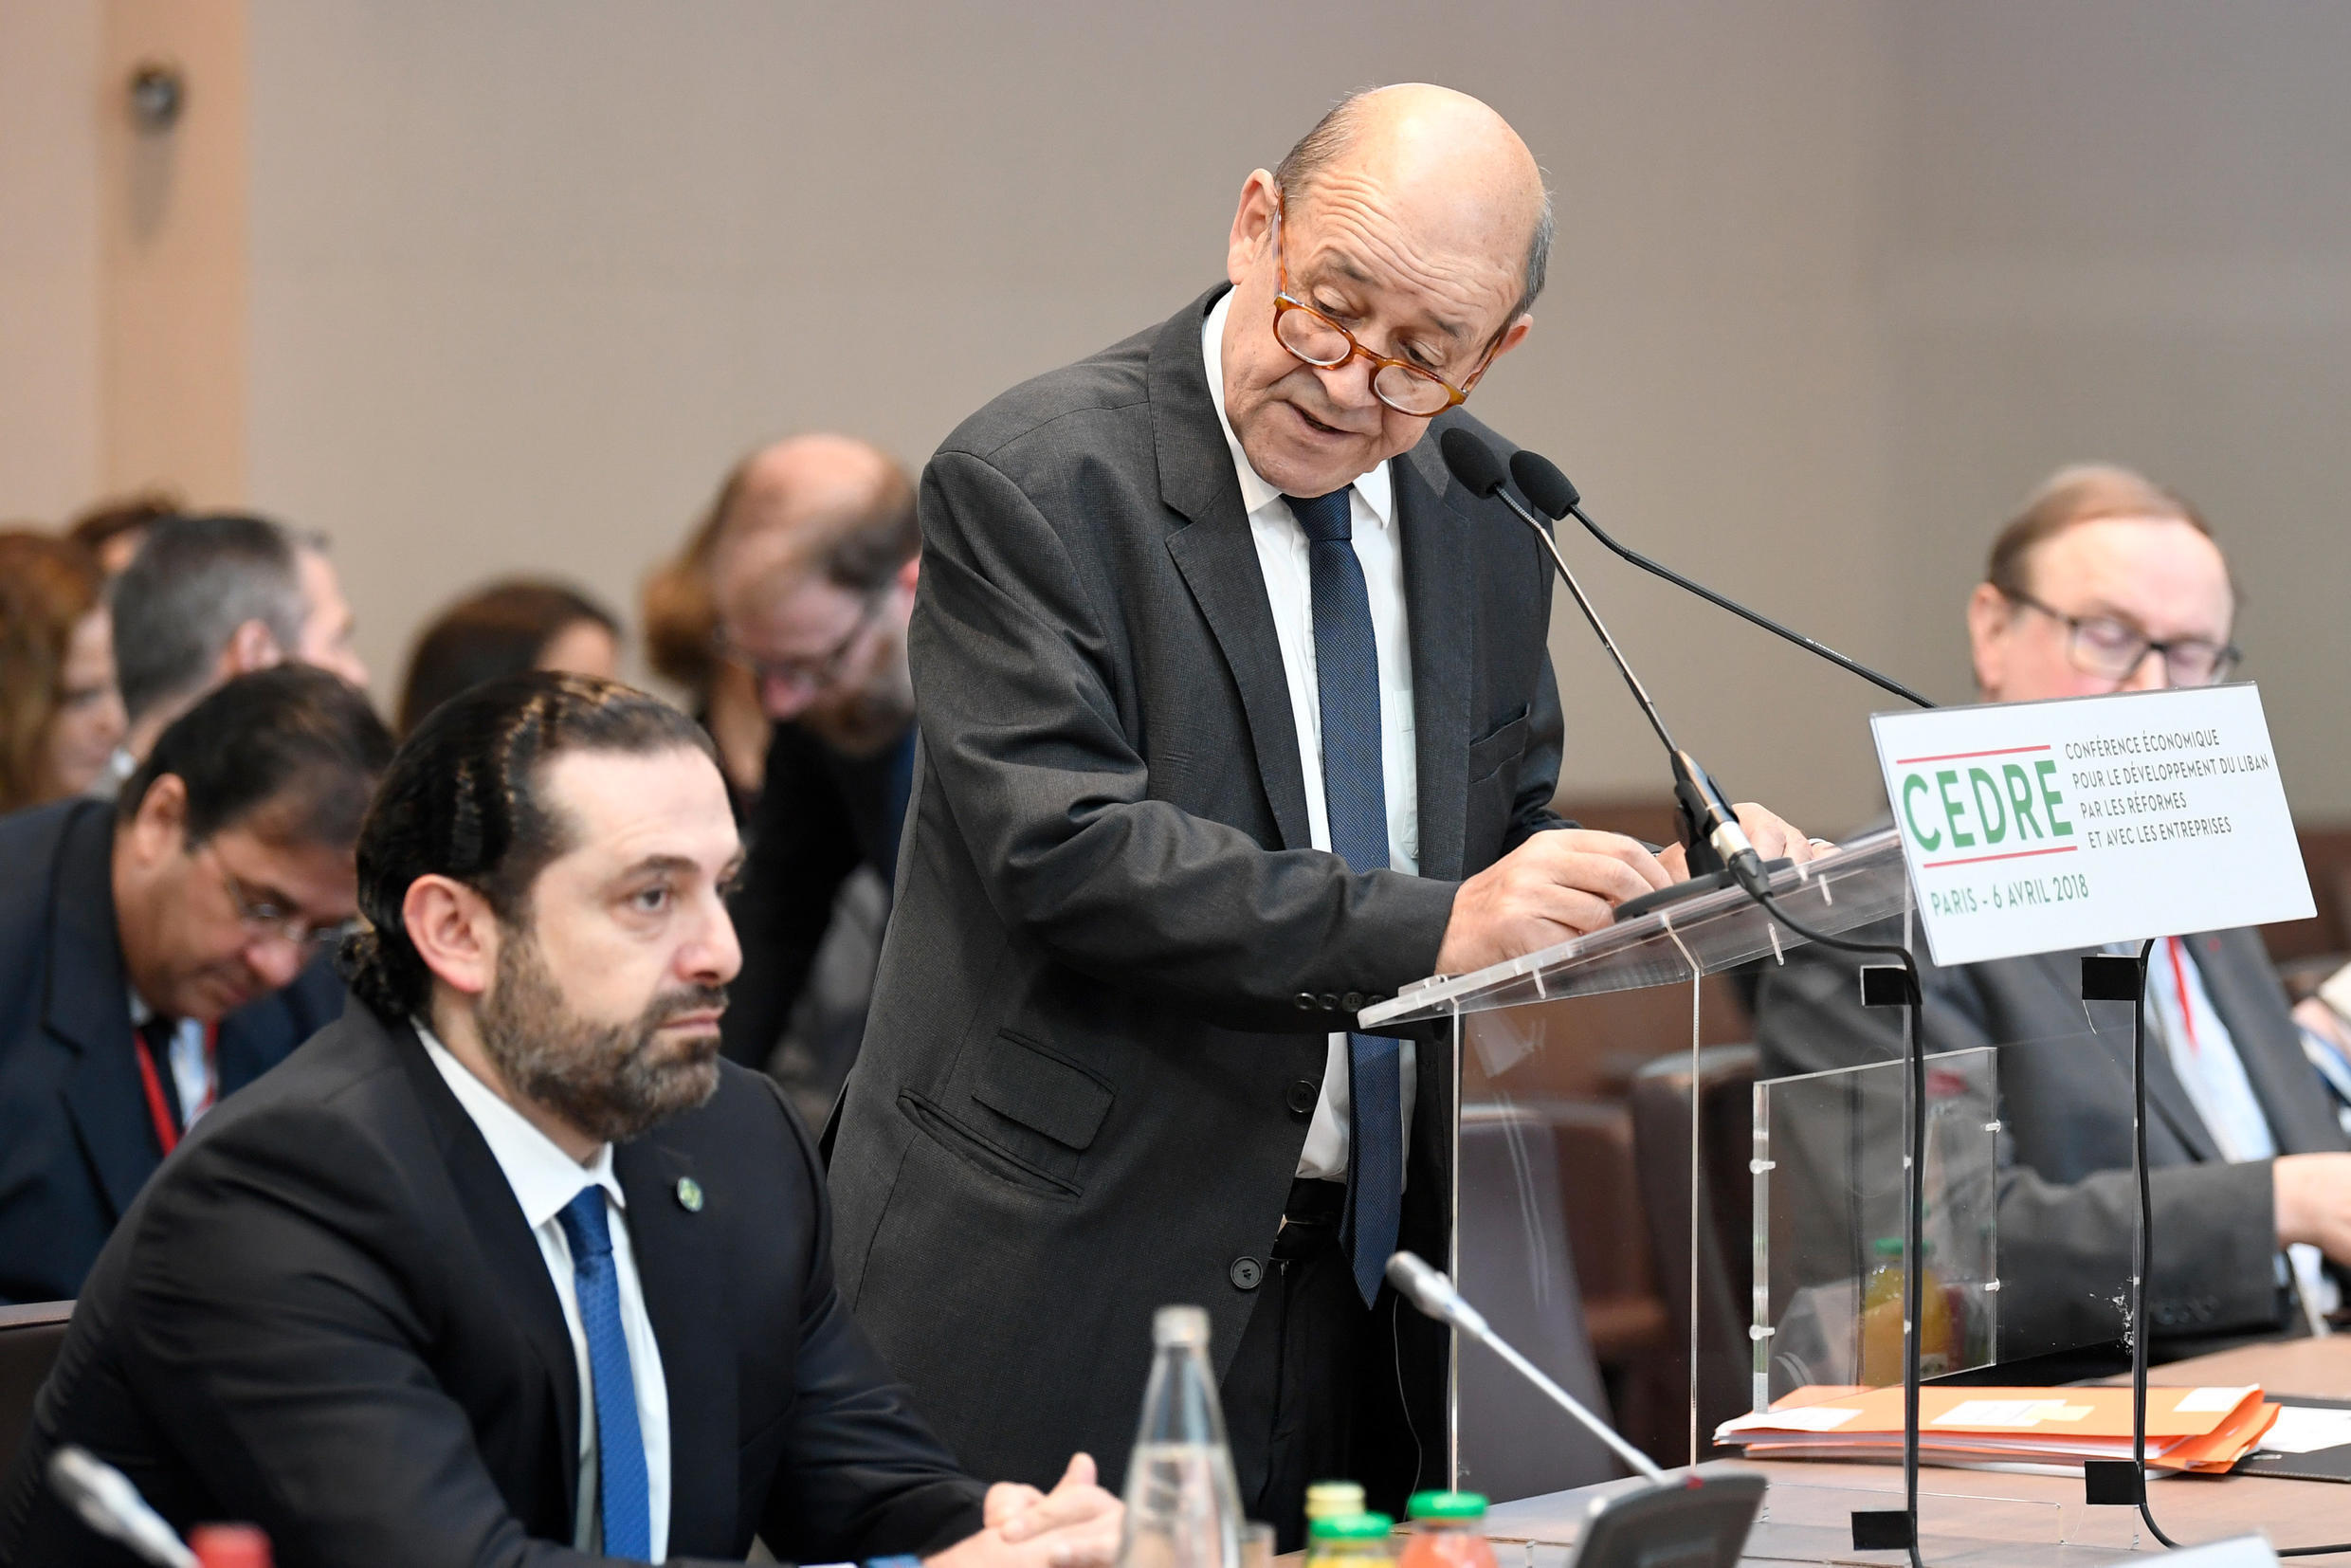 French Foreign Minister Jean-Yves Le Drian delivers his opening speech as Lebanese Prime Minister Saad Hariri at the Cedre conference